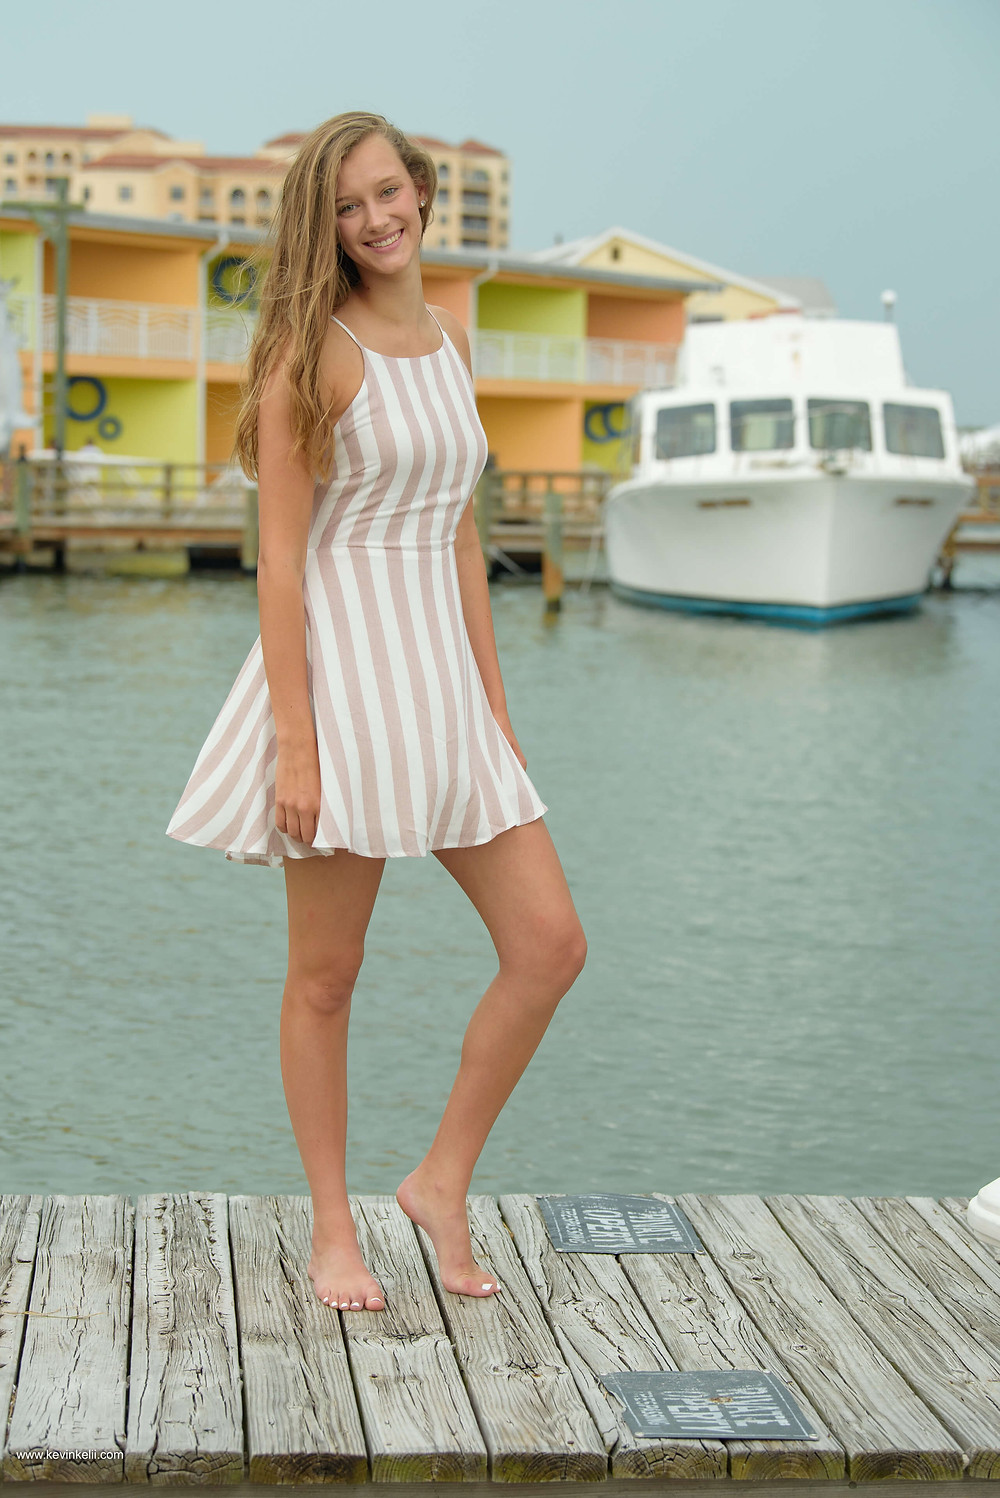 Kennedy's senior portraits at Clearwater Beach 2